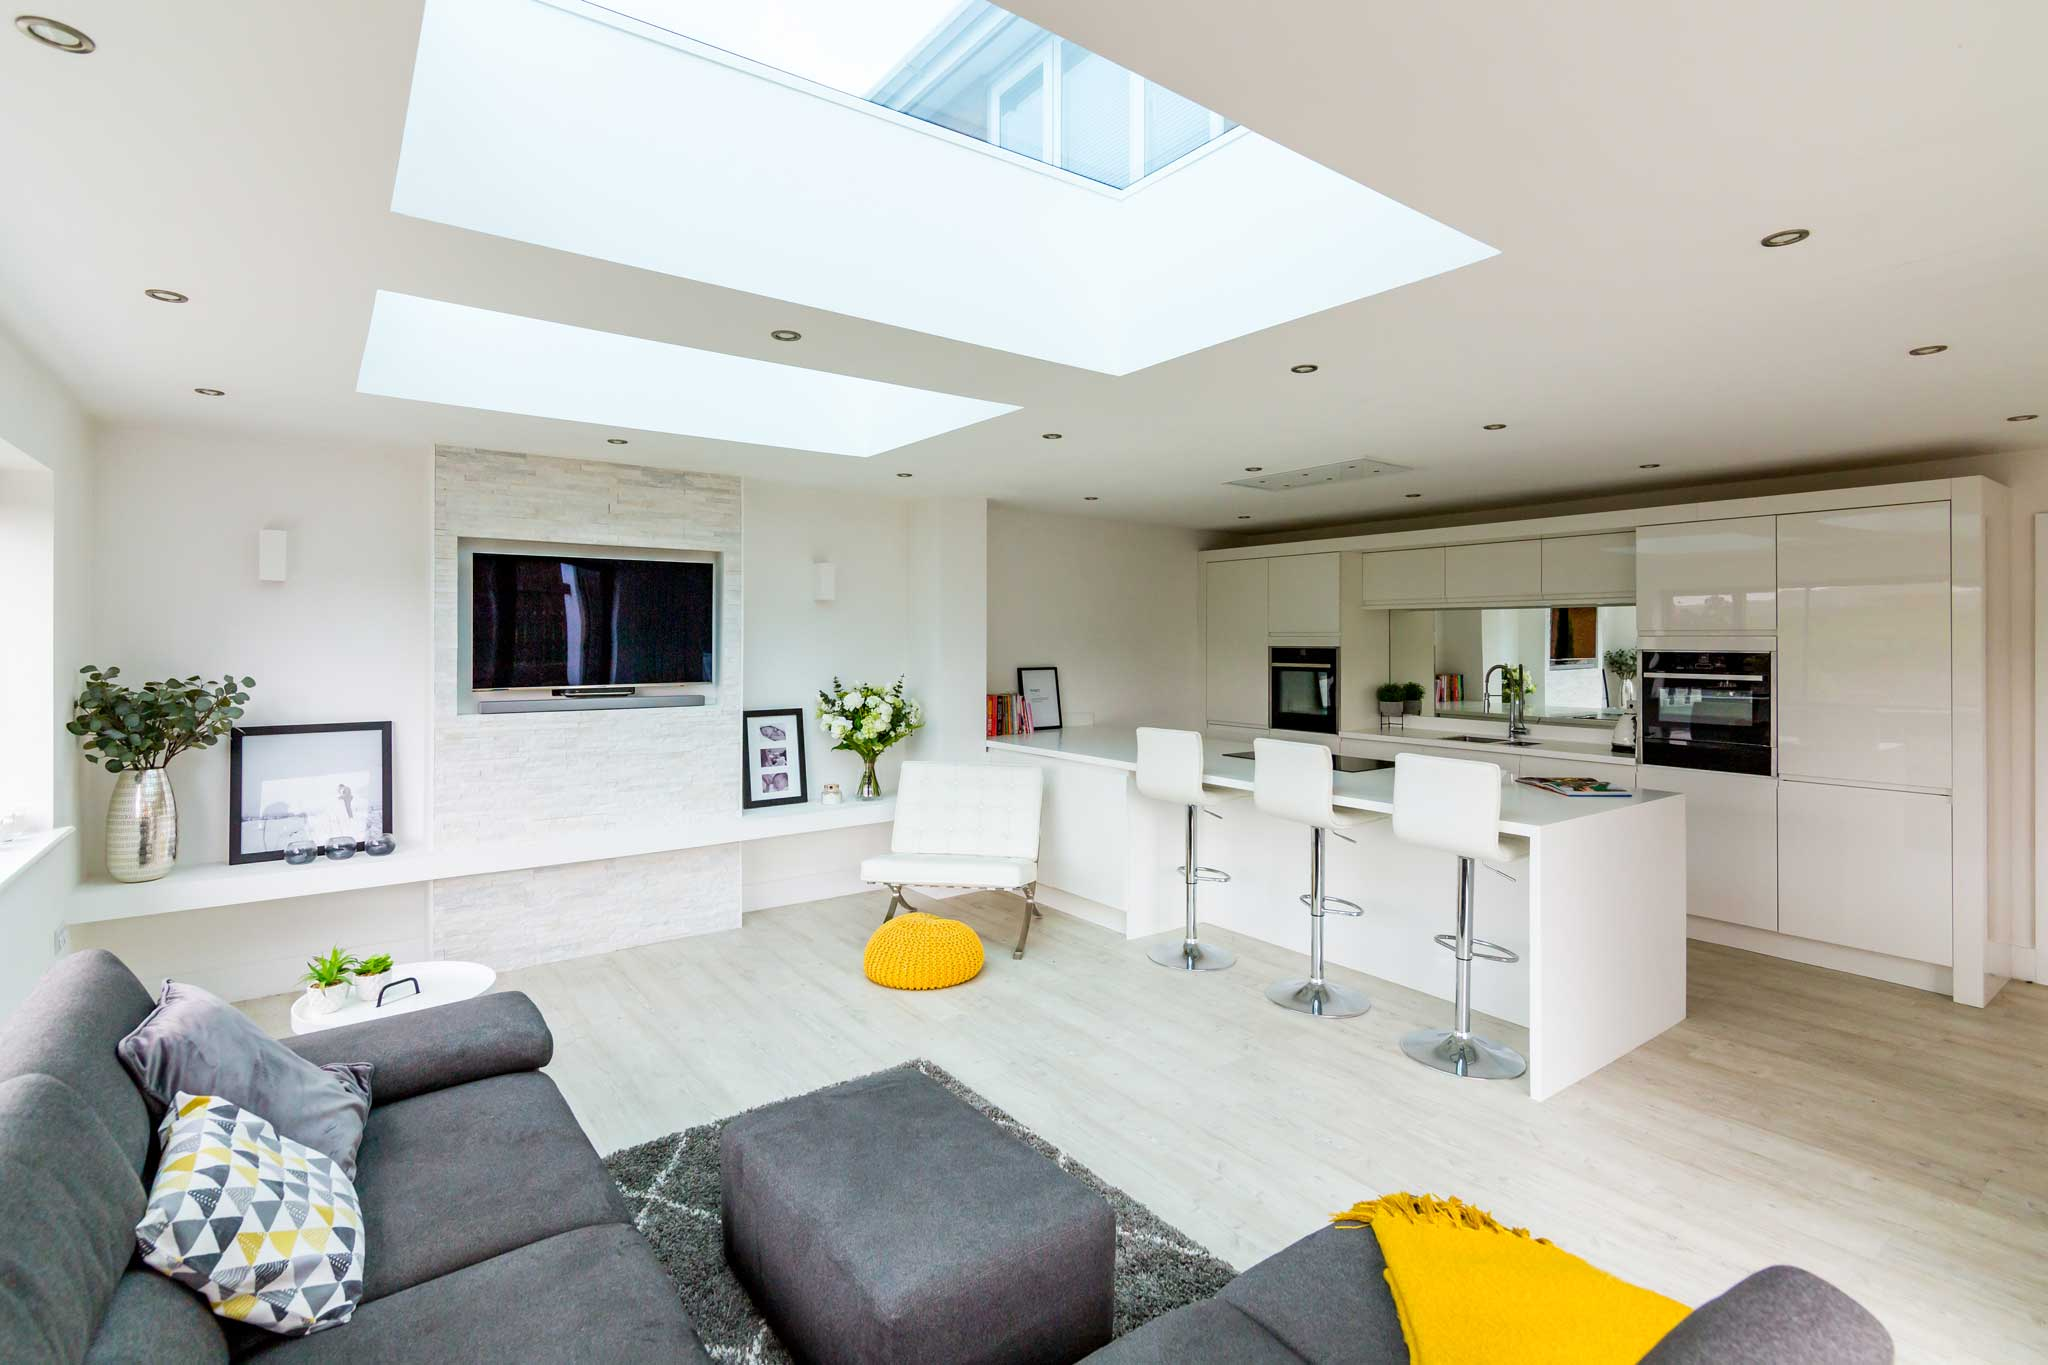 How to Make Your Extension Energy Efficient